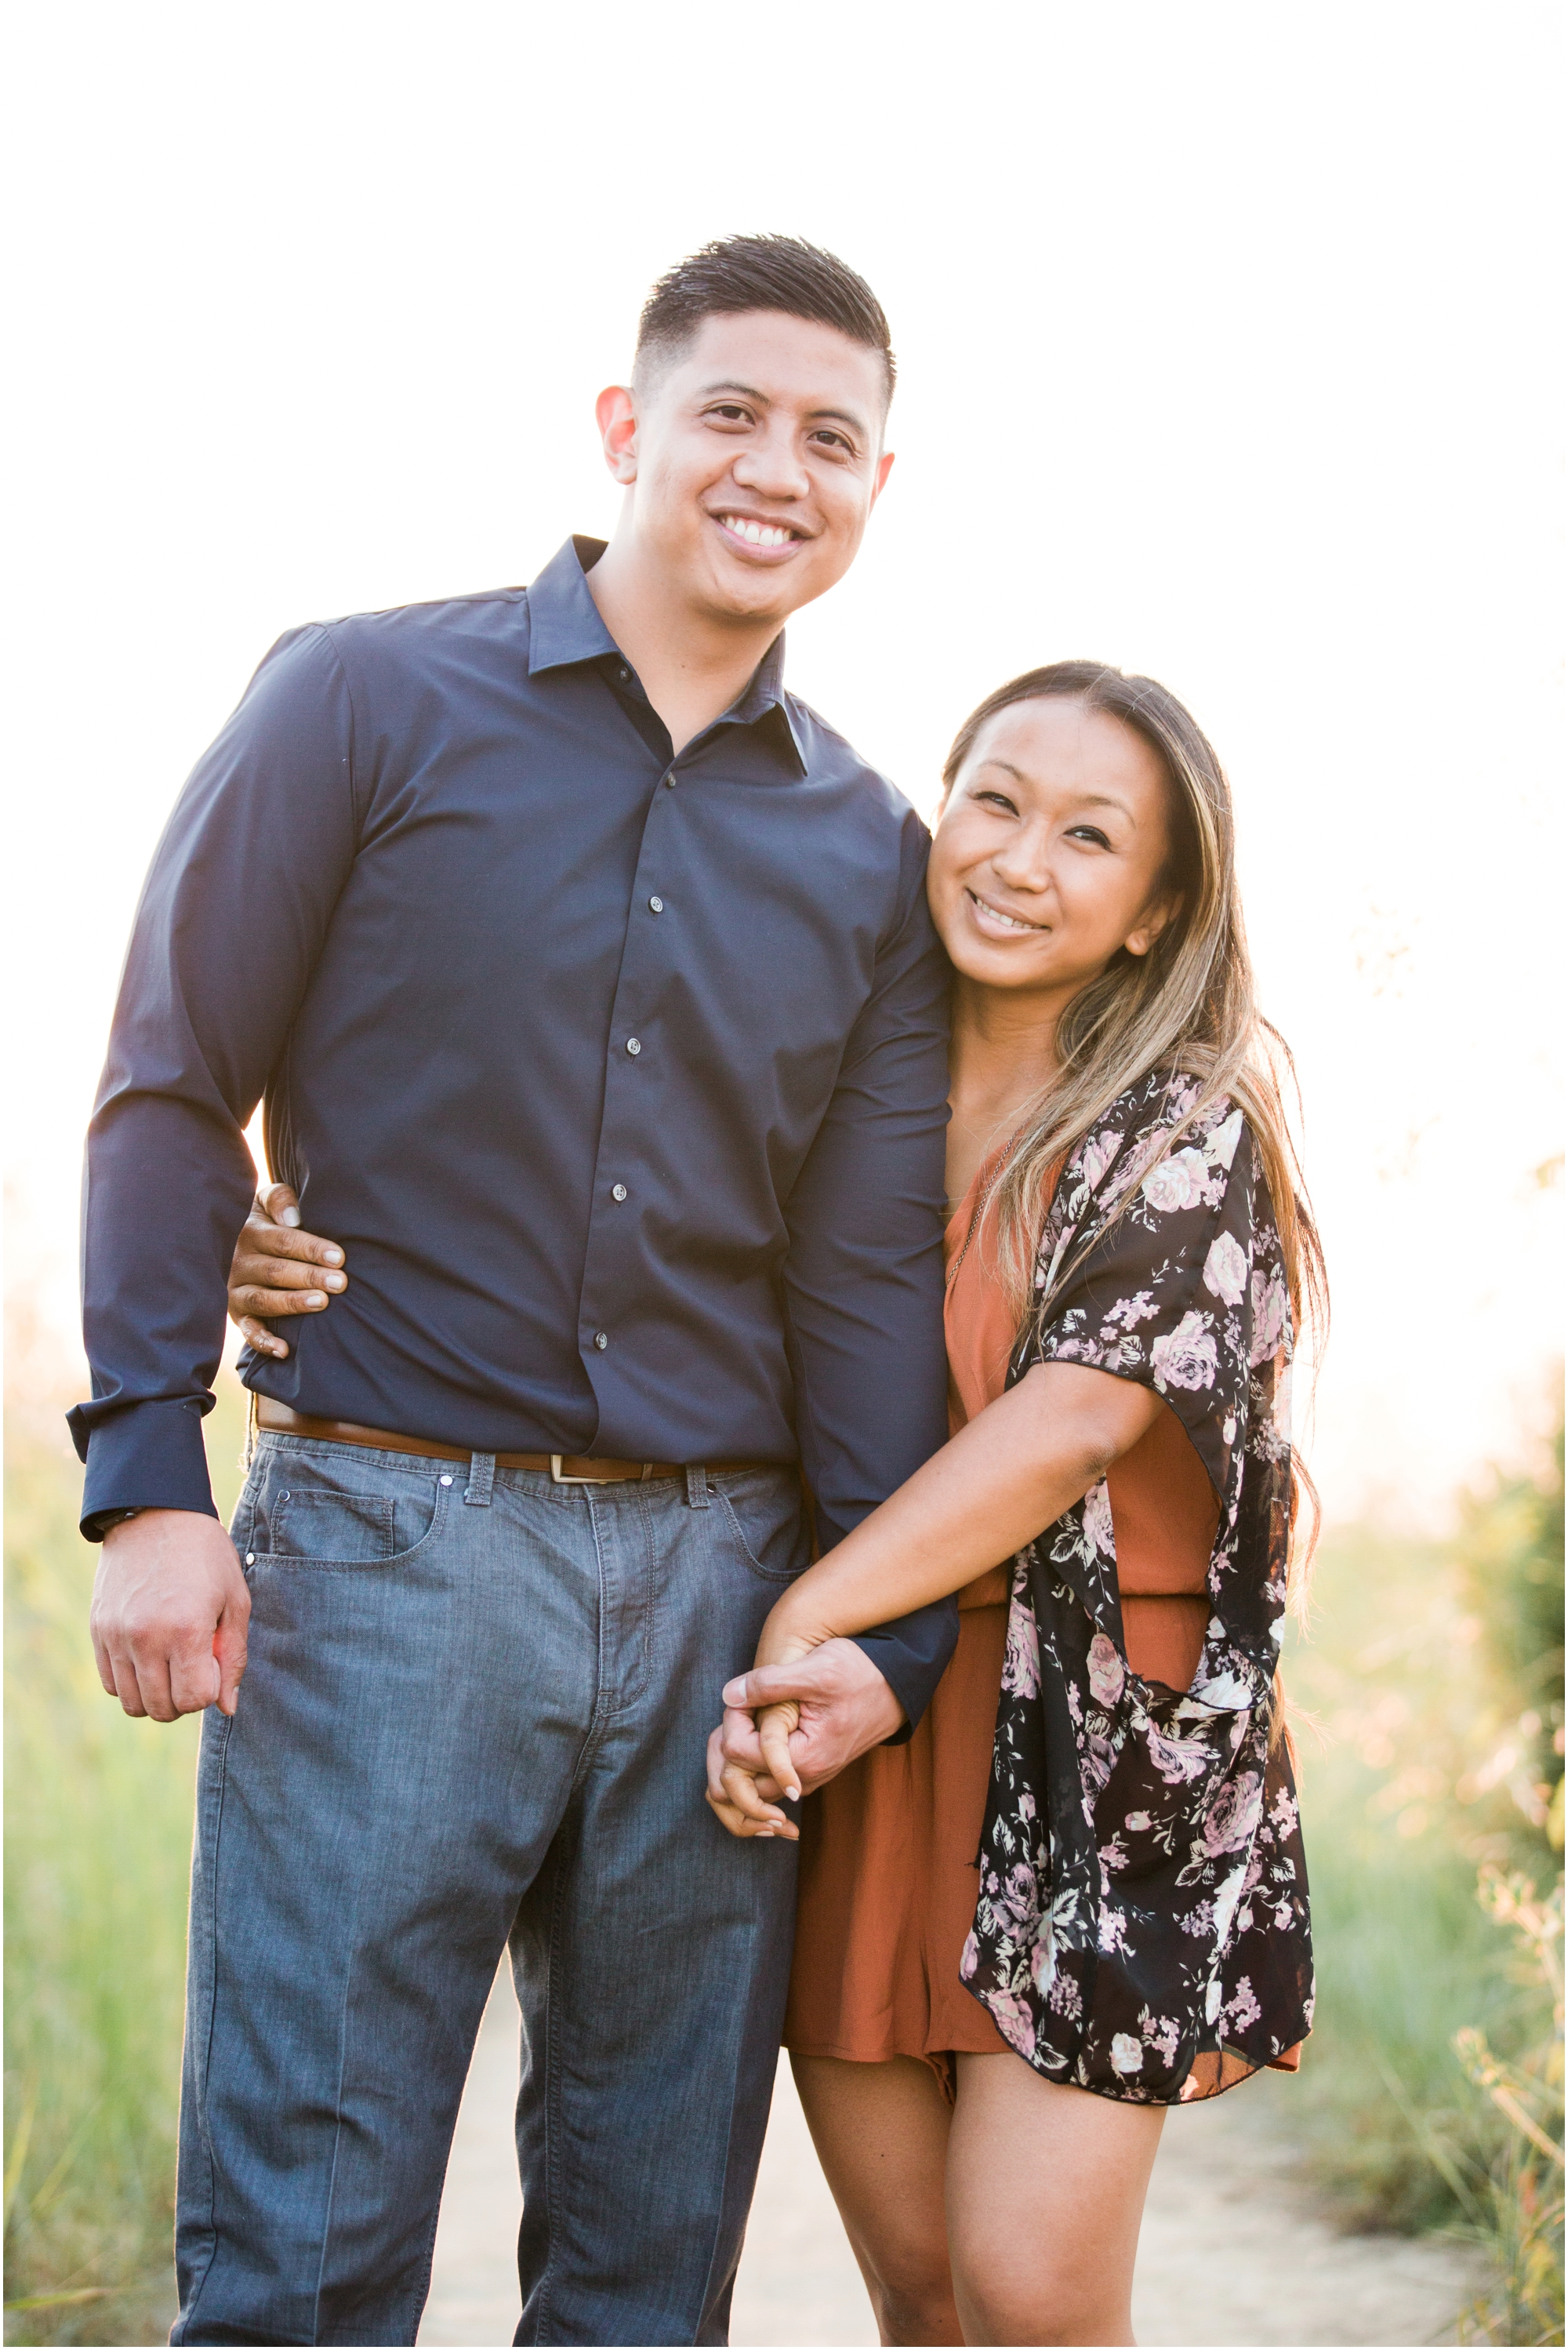 Willow Glan & Alviso Marina engagement pictures by Briana Calderon Photography_2119.jpg